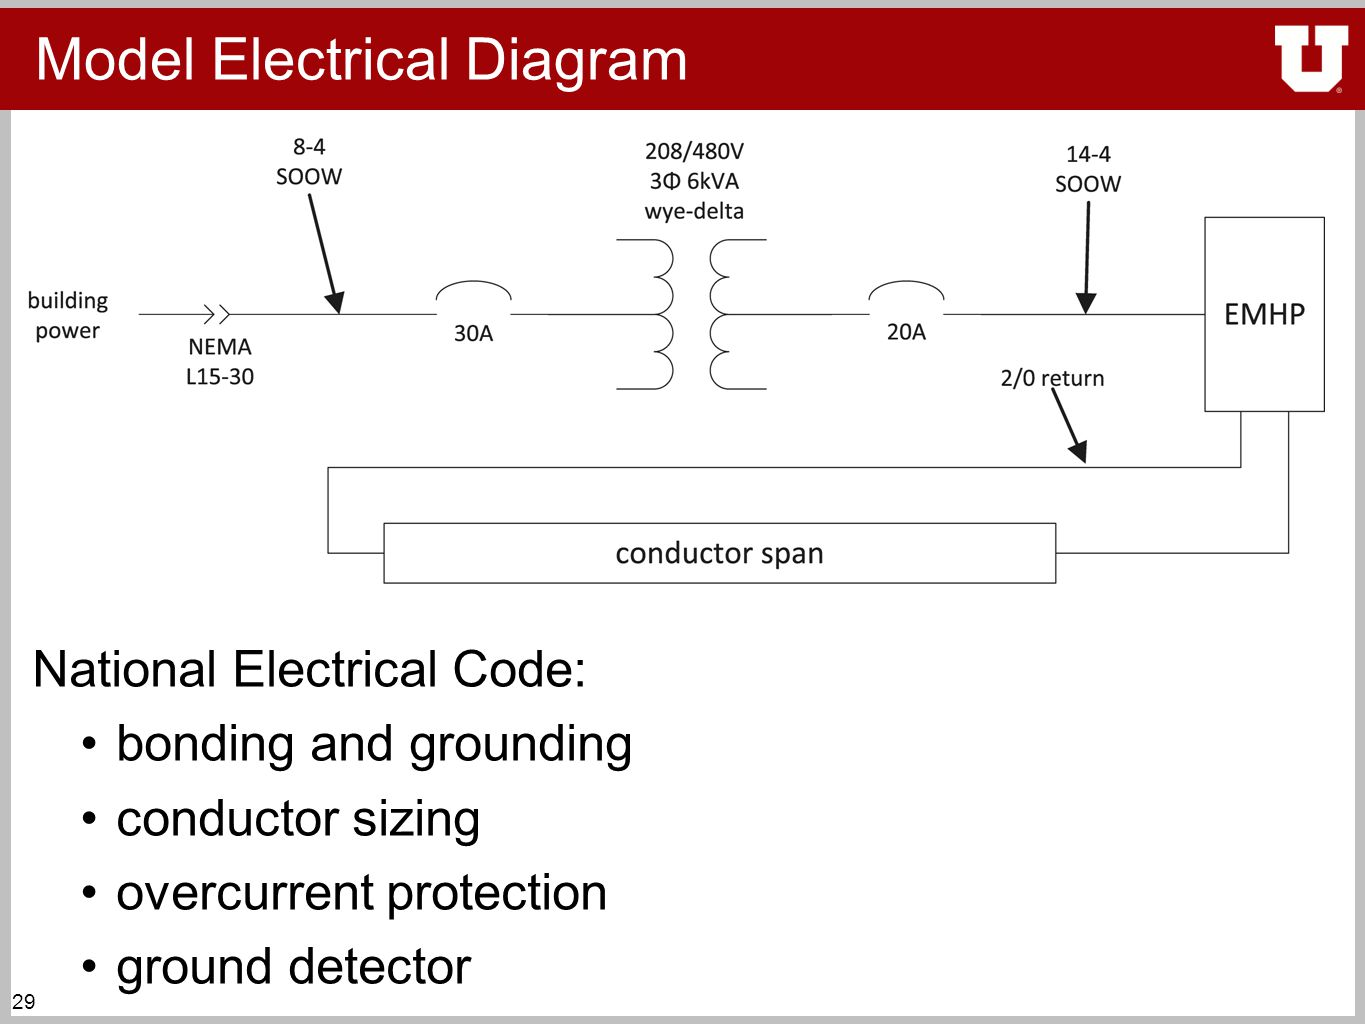 Electrical Conductor Sizes : Project advisor dr thomas schmid ppt video online download